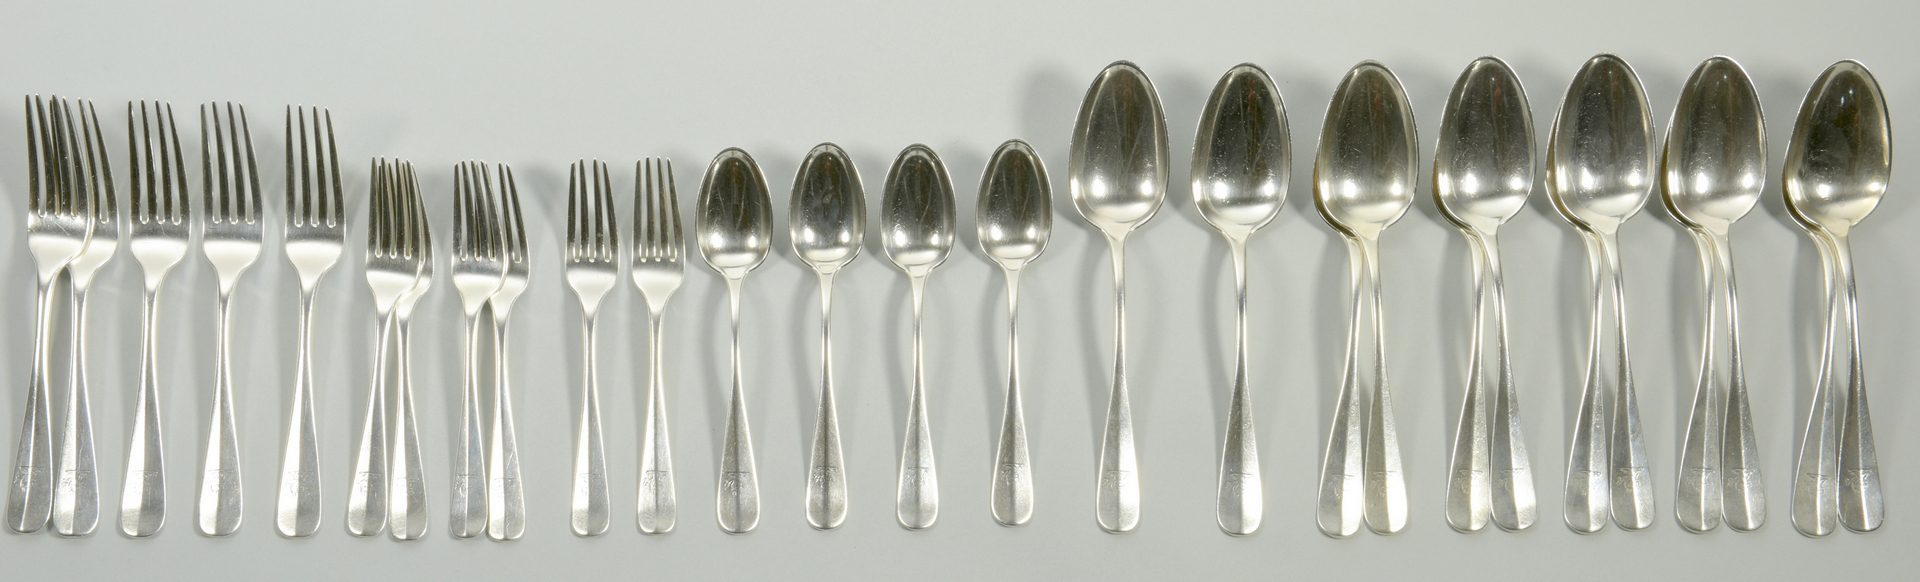 Lot 828: S. Kirk & Son Coin Silver Flatware, 27 pcs